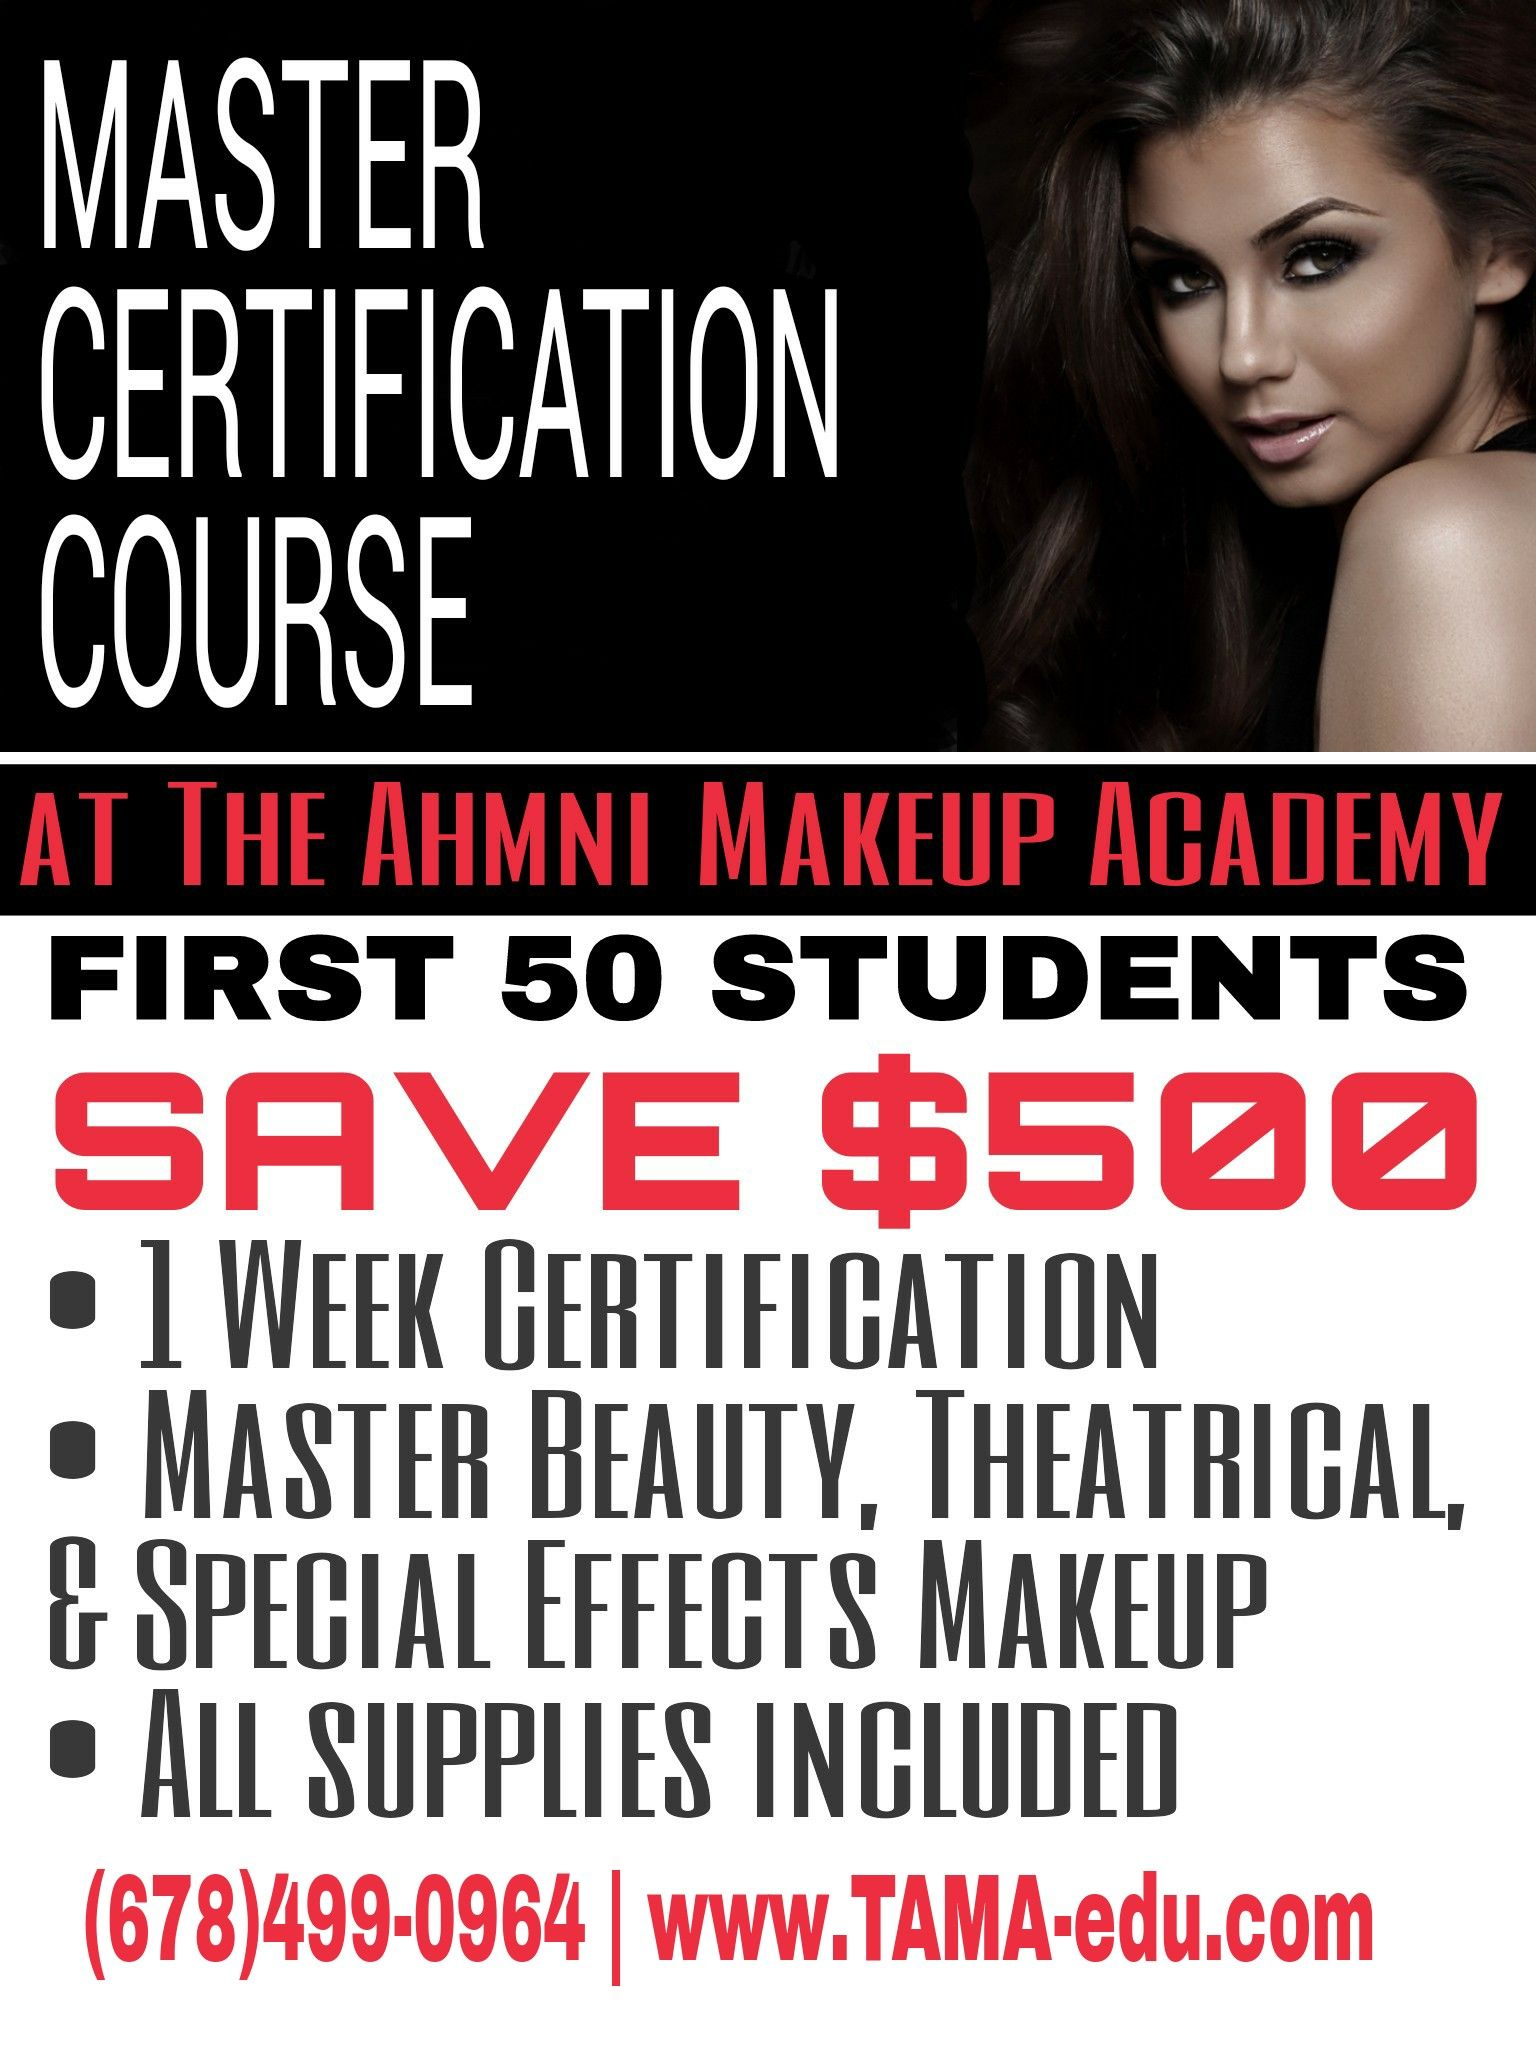 Master Certification Class for Makeup Artists at The Ahmni